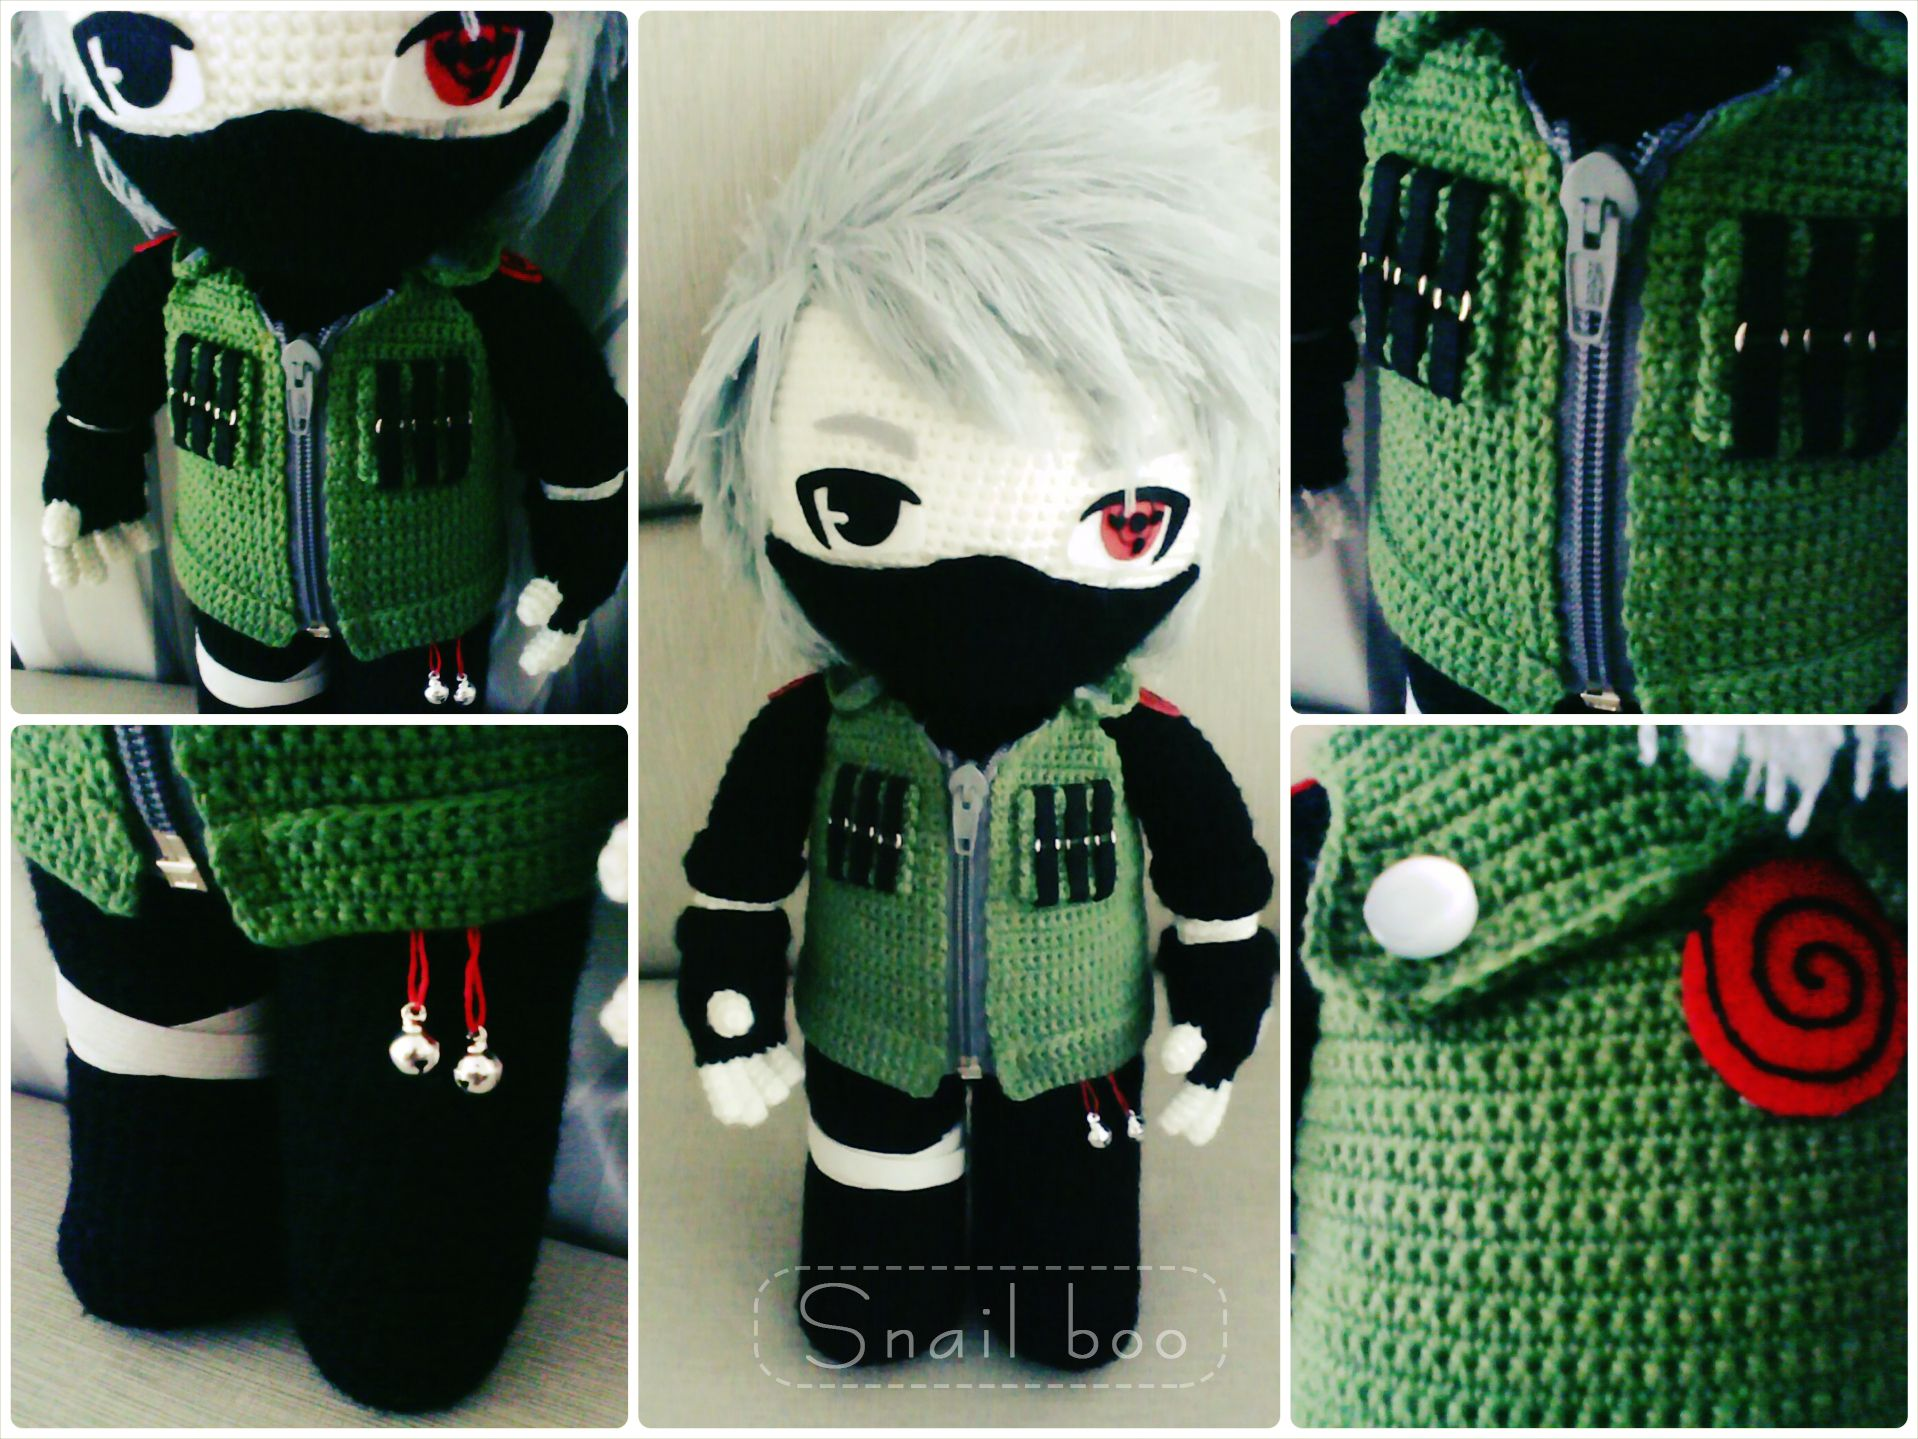 Kakashi crochet doll by abaoabao.deviantart.com on @deviantART ...